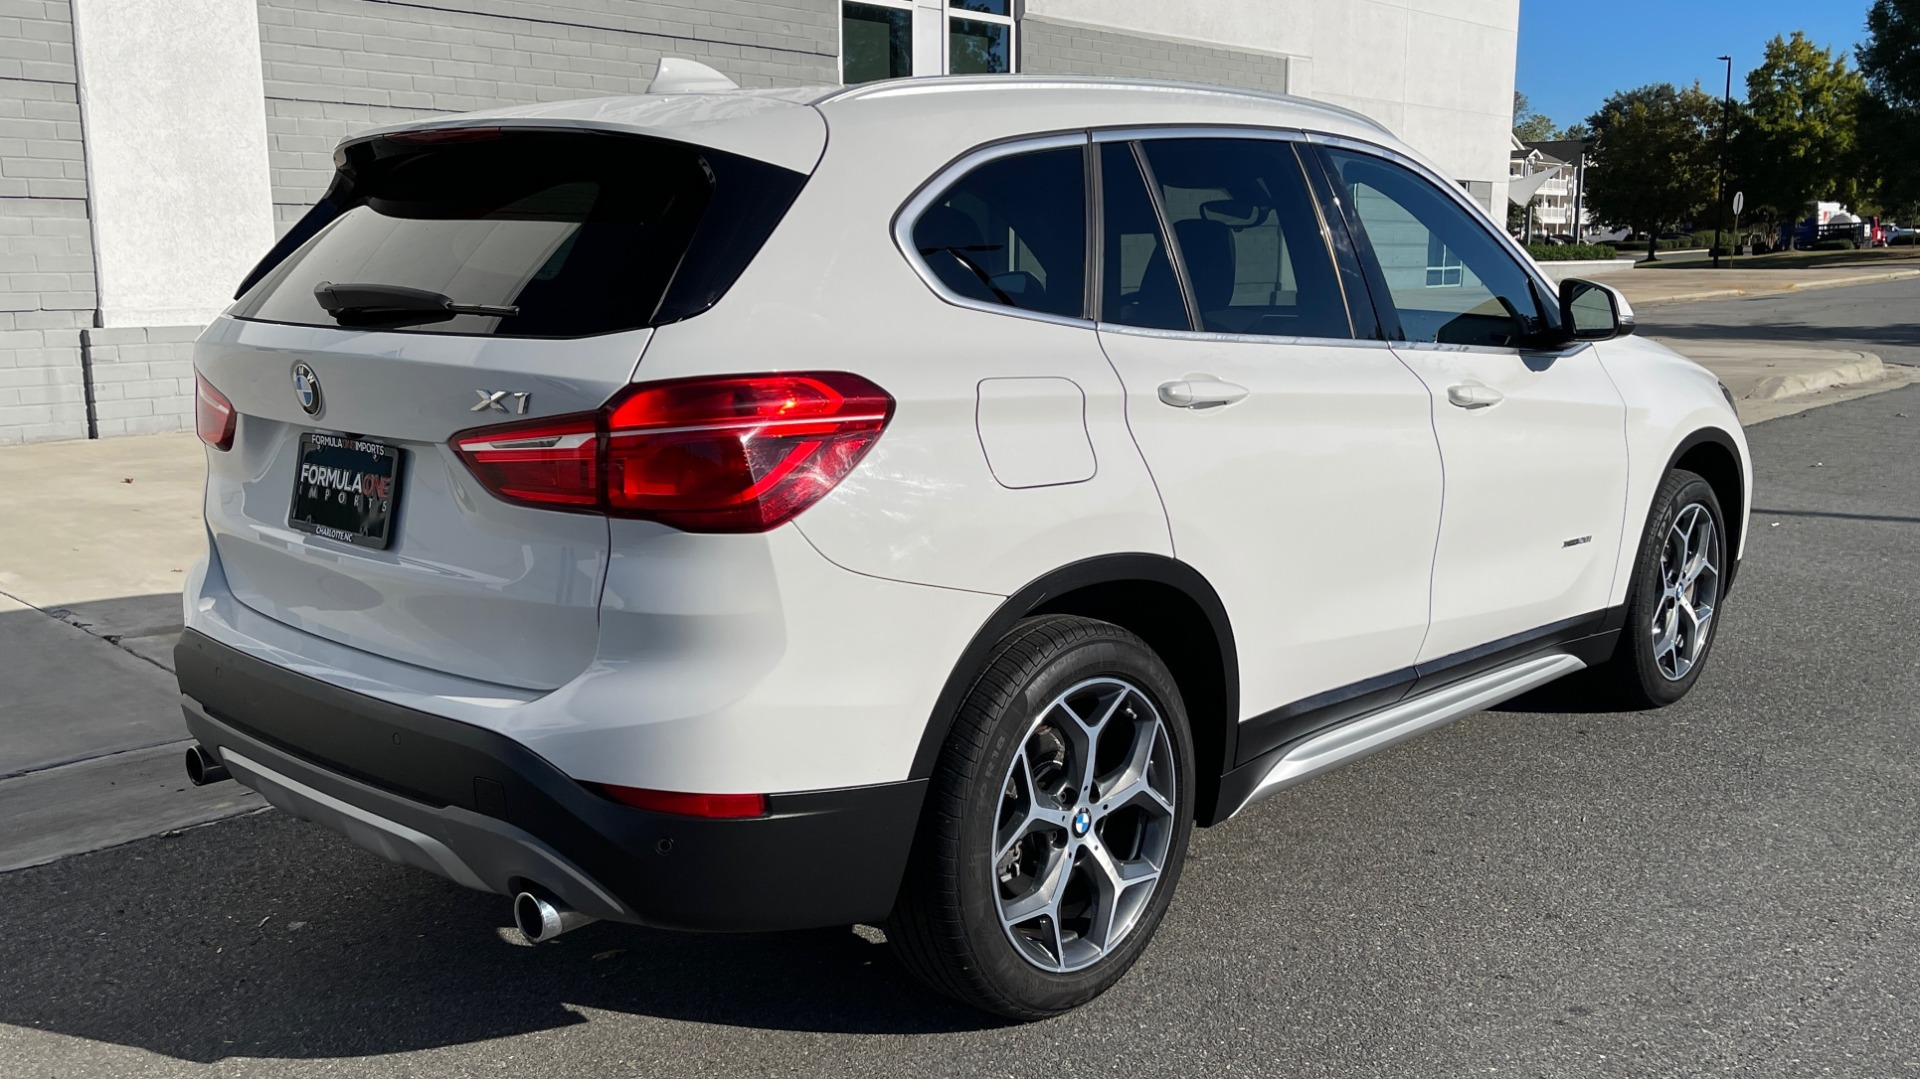 Used 2018 BMW X1 XDRIVE28I / CONV PKG / PANO-ROOF / PARK ASST / REARVIEW for sale $31,995 at Formula Imports in Charlotte NC 28227 7